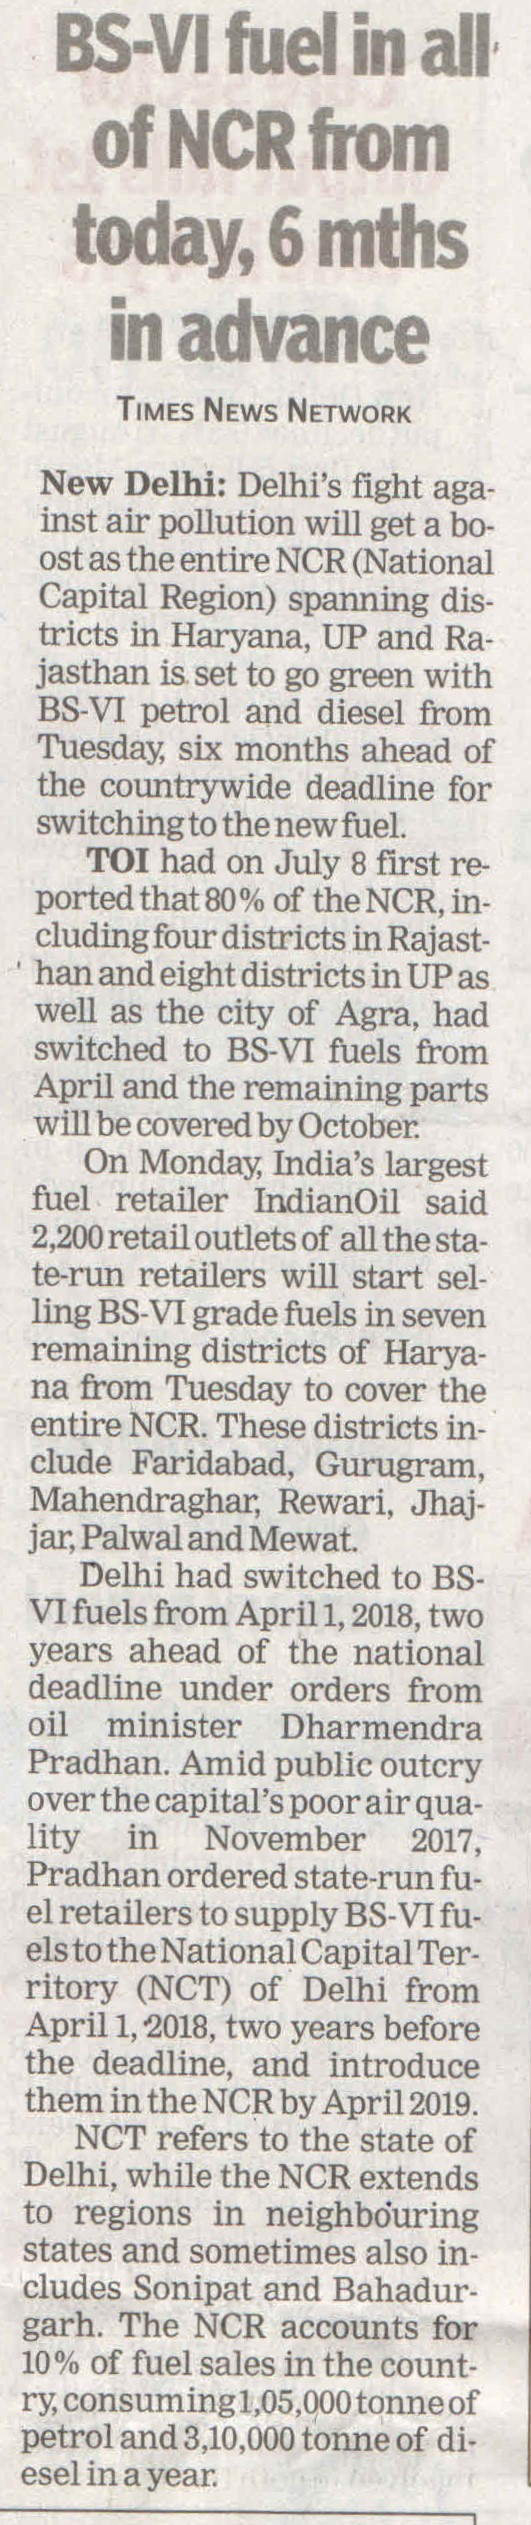 Your tryst with clean air may end next week - BS-VI fuel in all of NCR from today, 6 months in advance